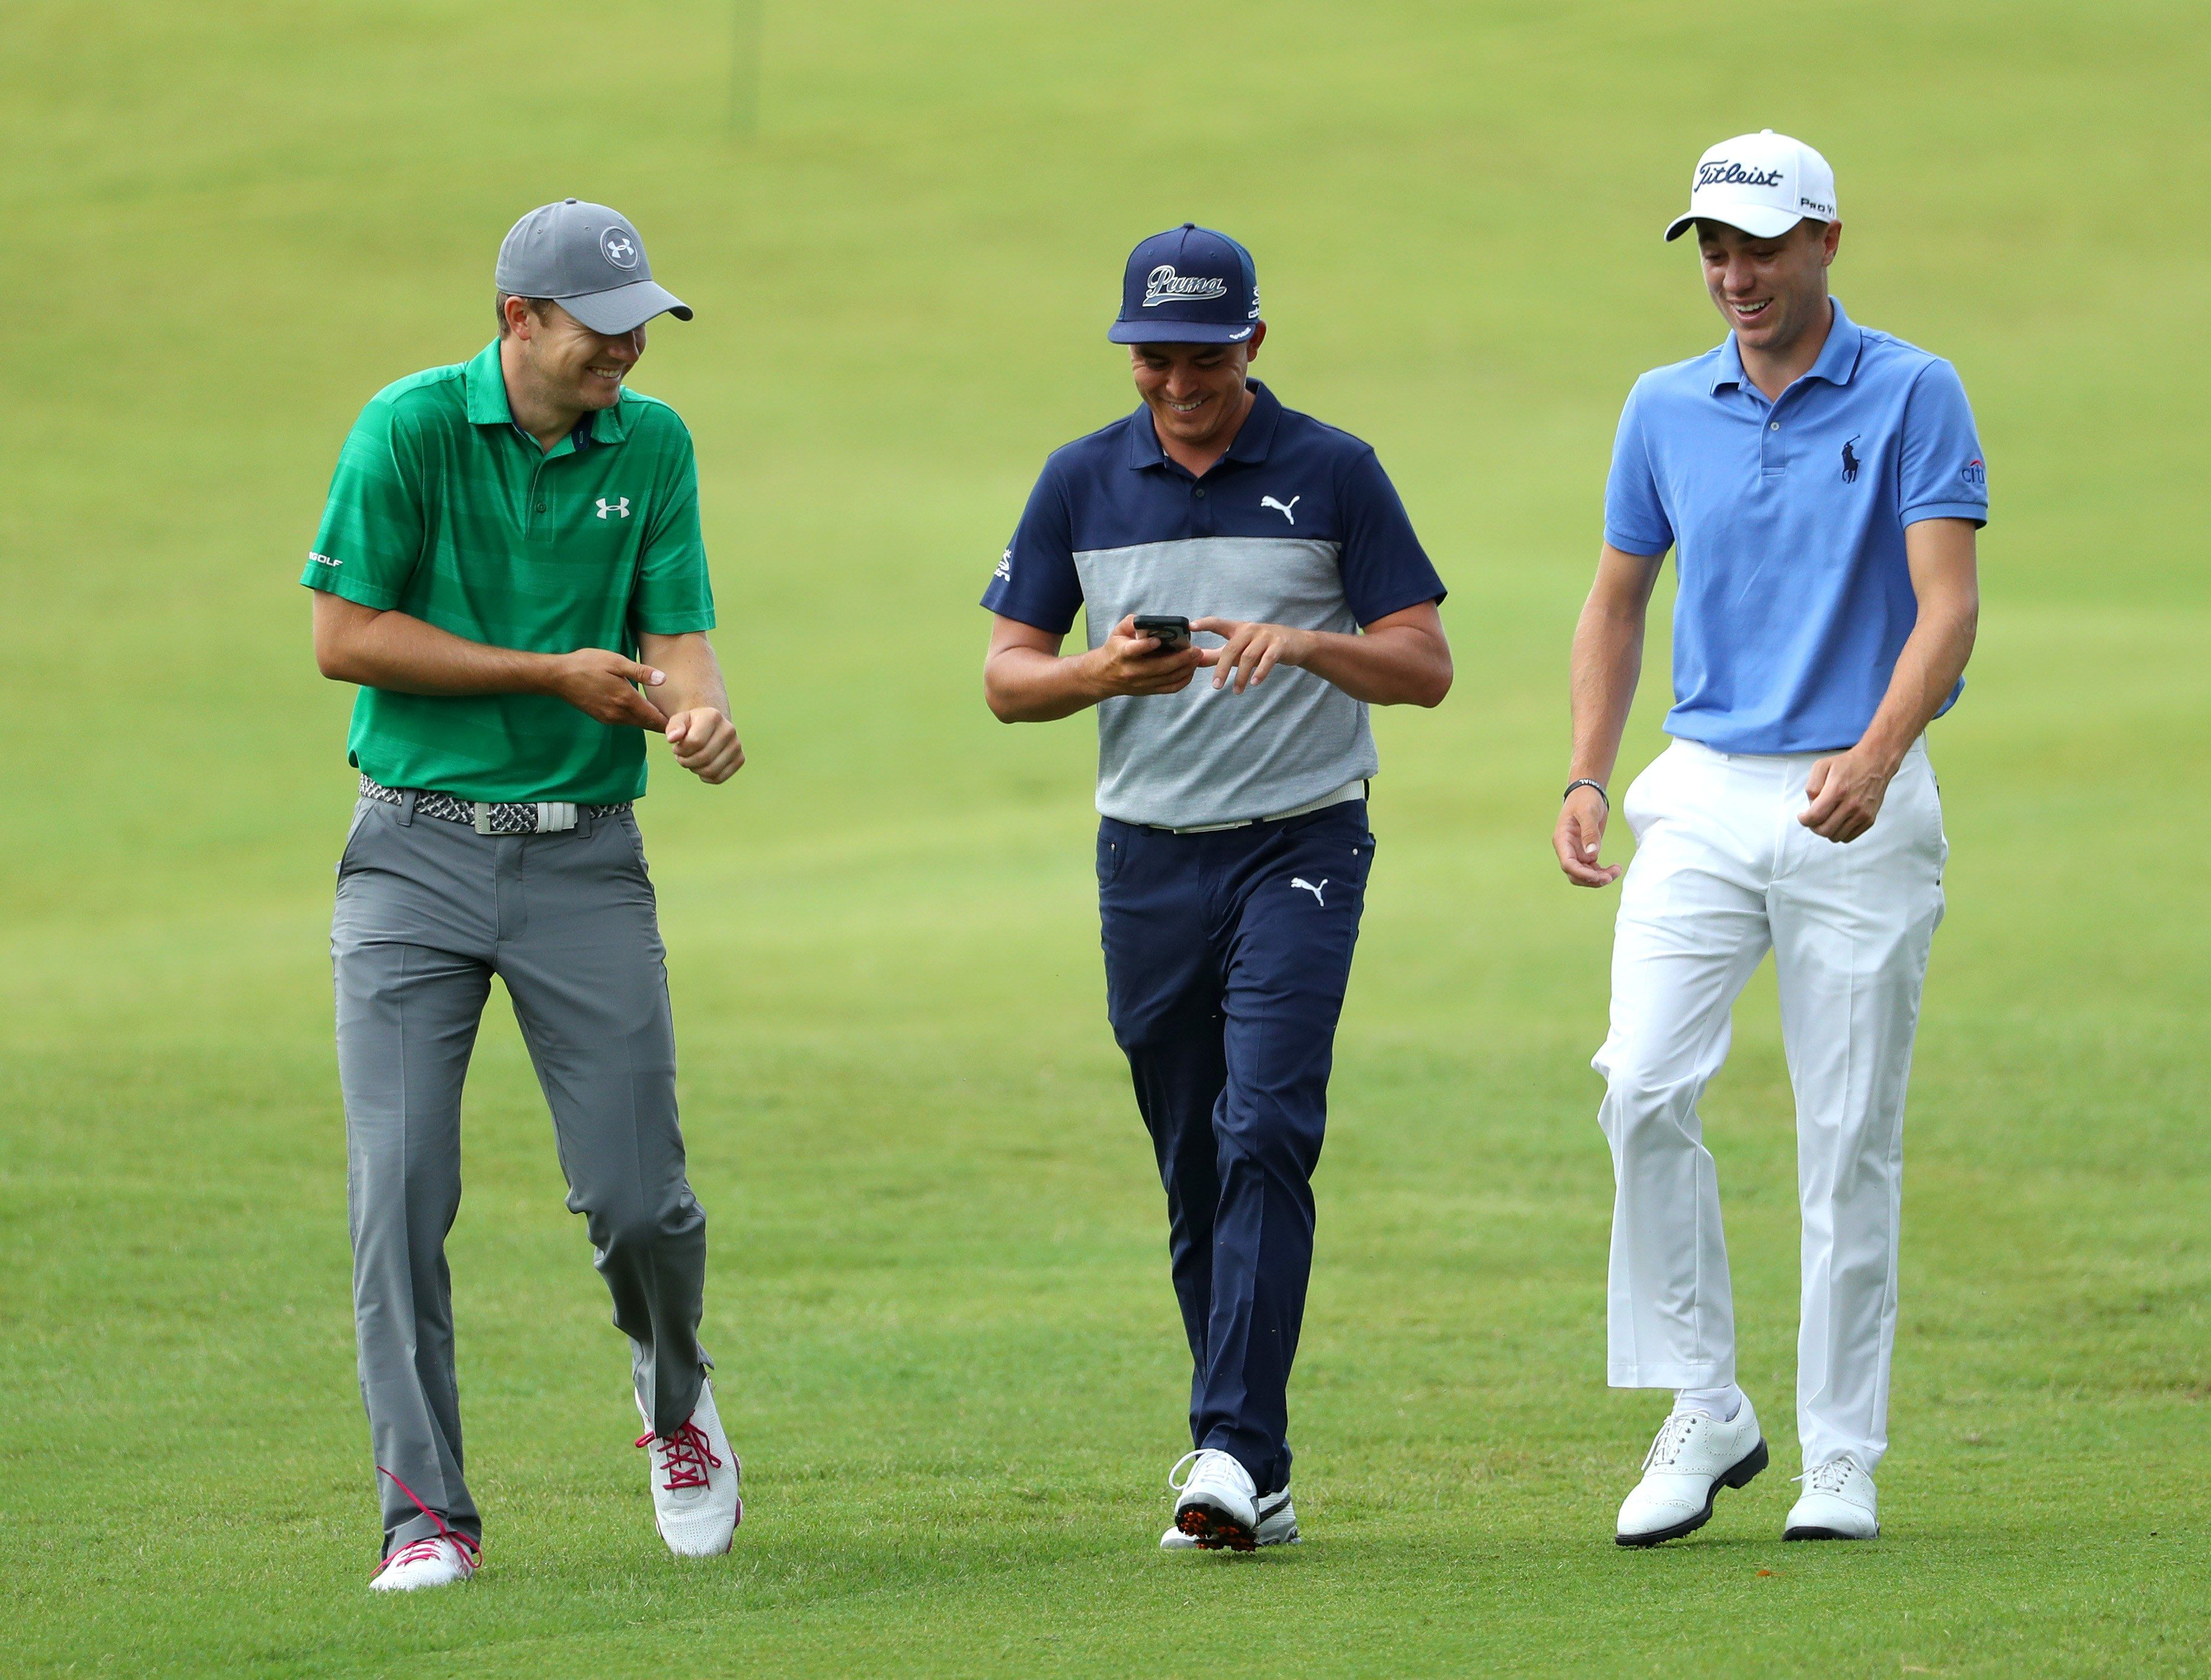 Watch what it's like to be paired with Jordan Spieth and